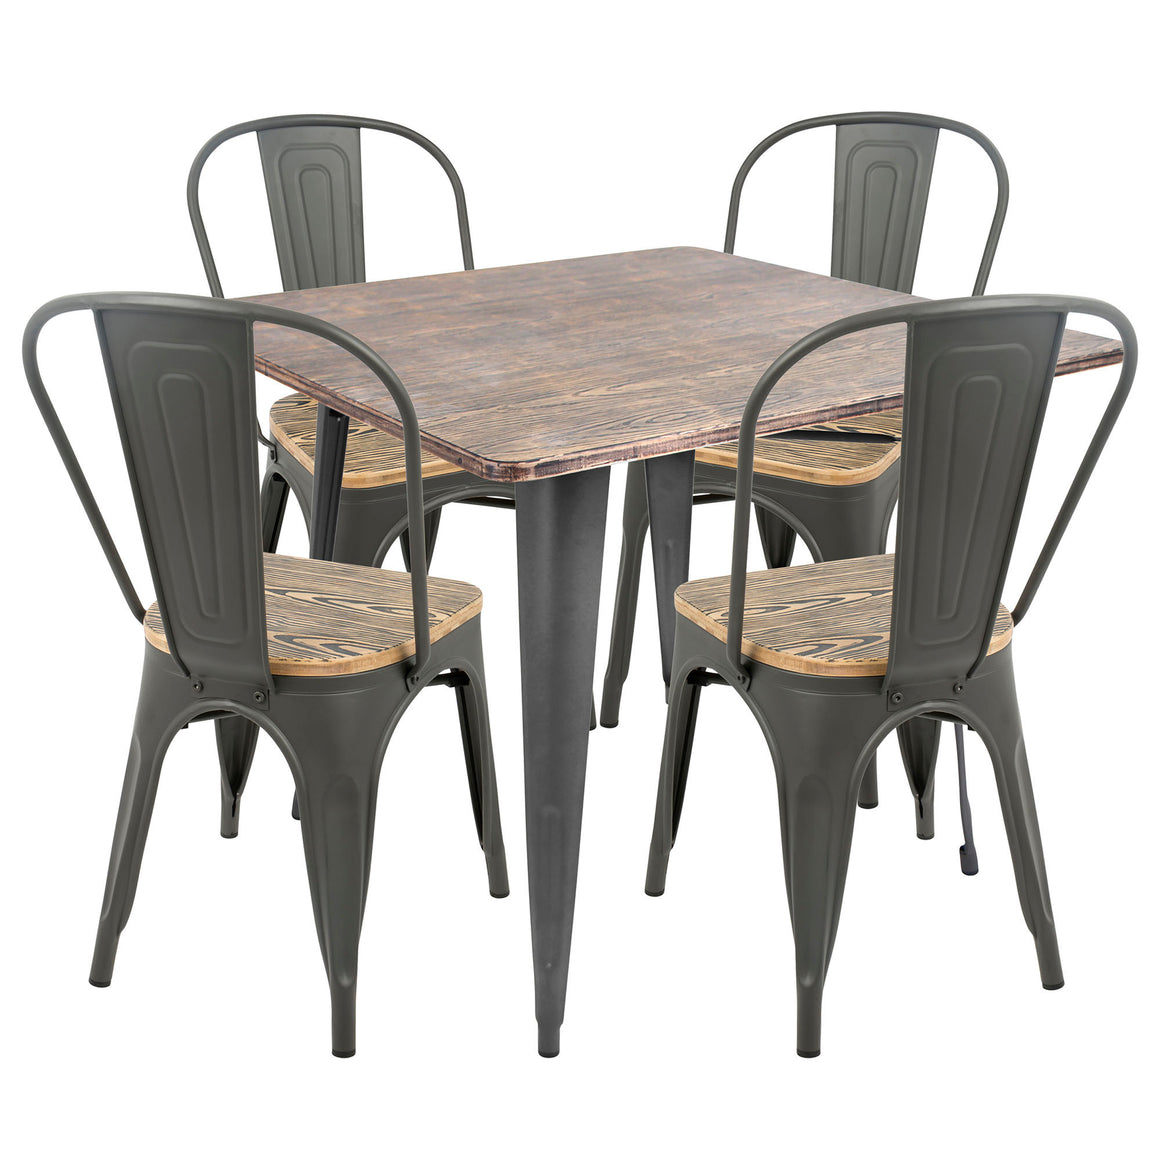 Oregon 5-Piece Industrial-Farmhouse Dining Set in Grey and Brown by LumiSource